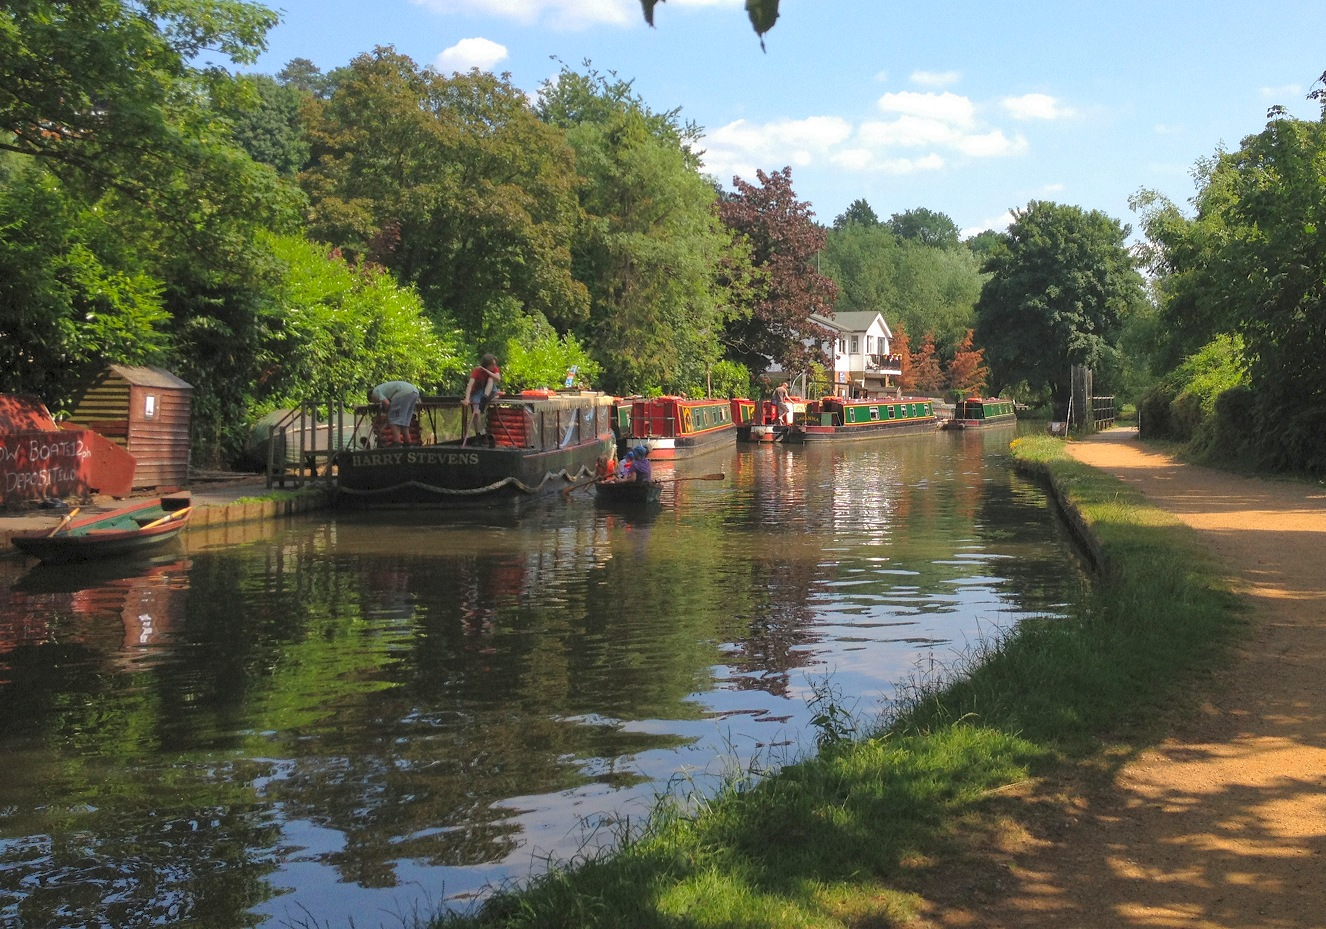 Narrowboats on the River Wey